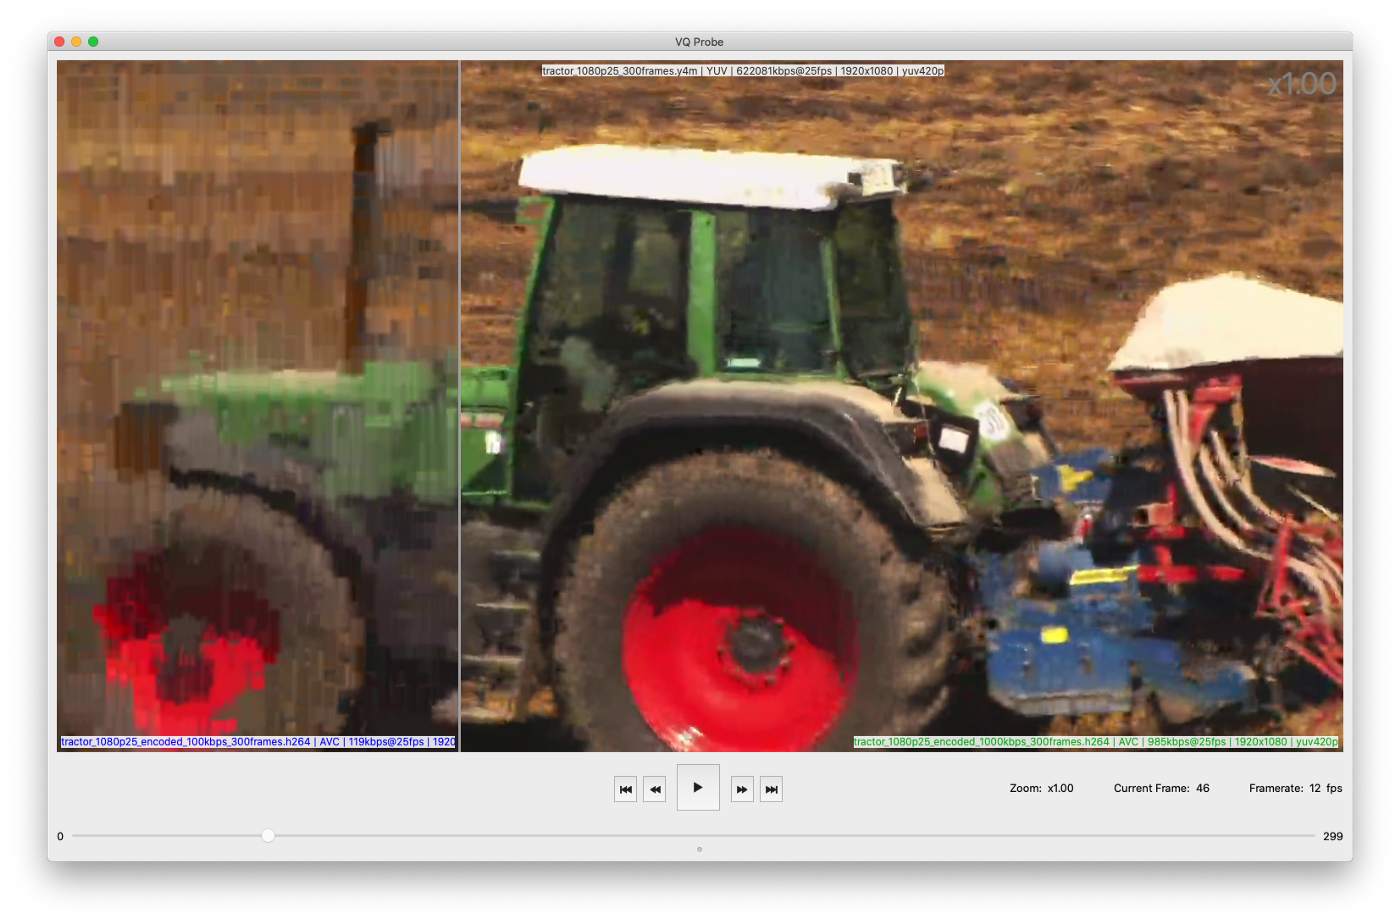 VQ Probe shows 2 tractor movies encoded with different bitrates